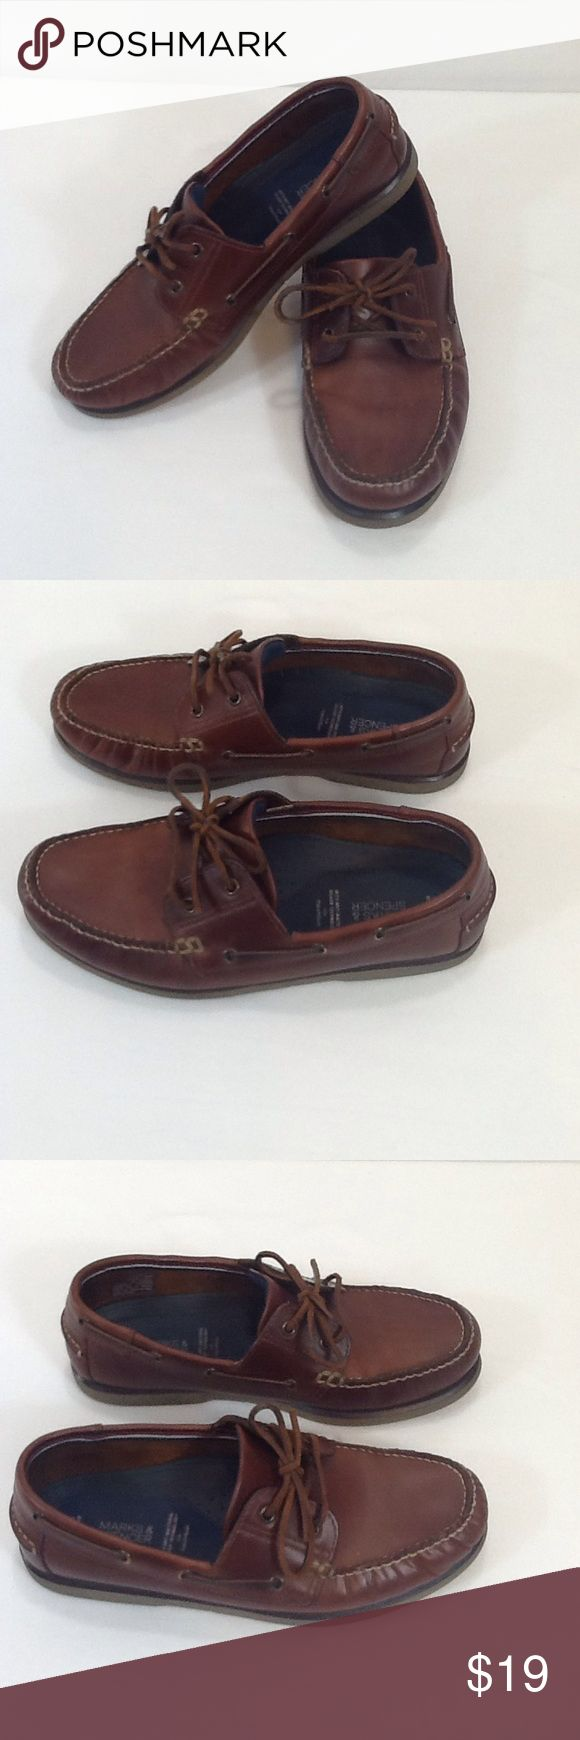 Marks and Spencer men's boat shoes Very good pre-owned condition. English boat shoes - Euro size 43, British men's size 9. Spice brown color genuine leather upper.  Durable rubber sole and heel show no signs of wear. Marks and Spencer Shoes Boat Shoes